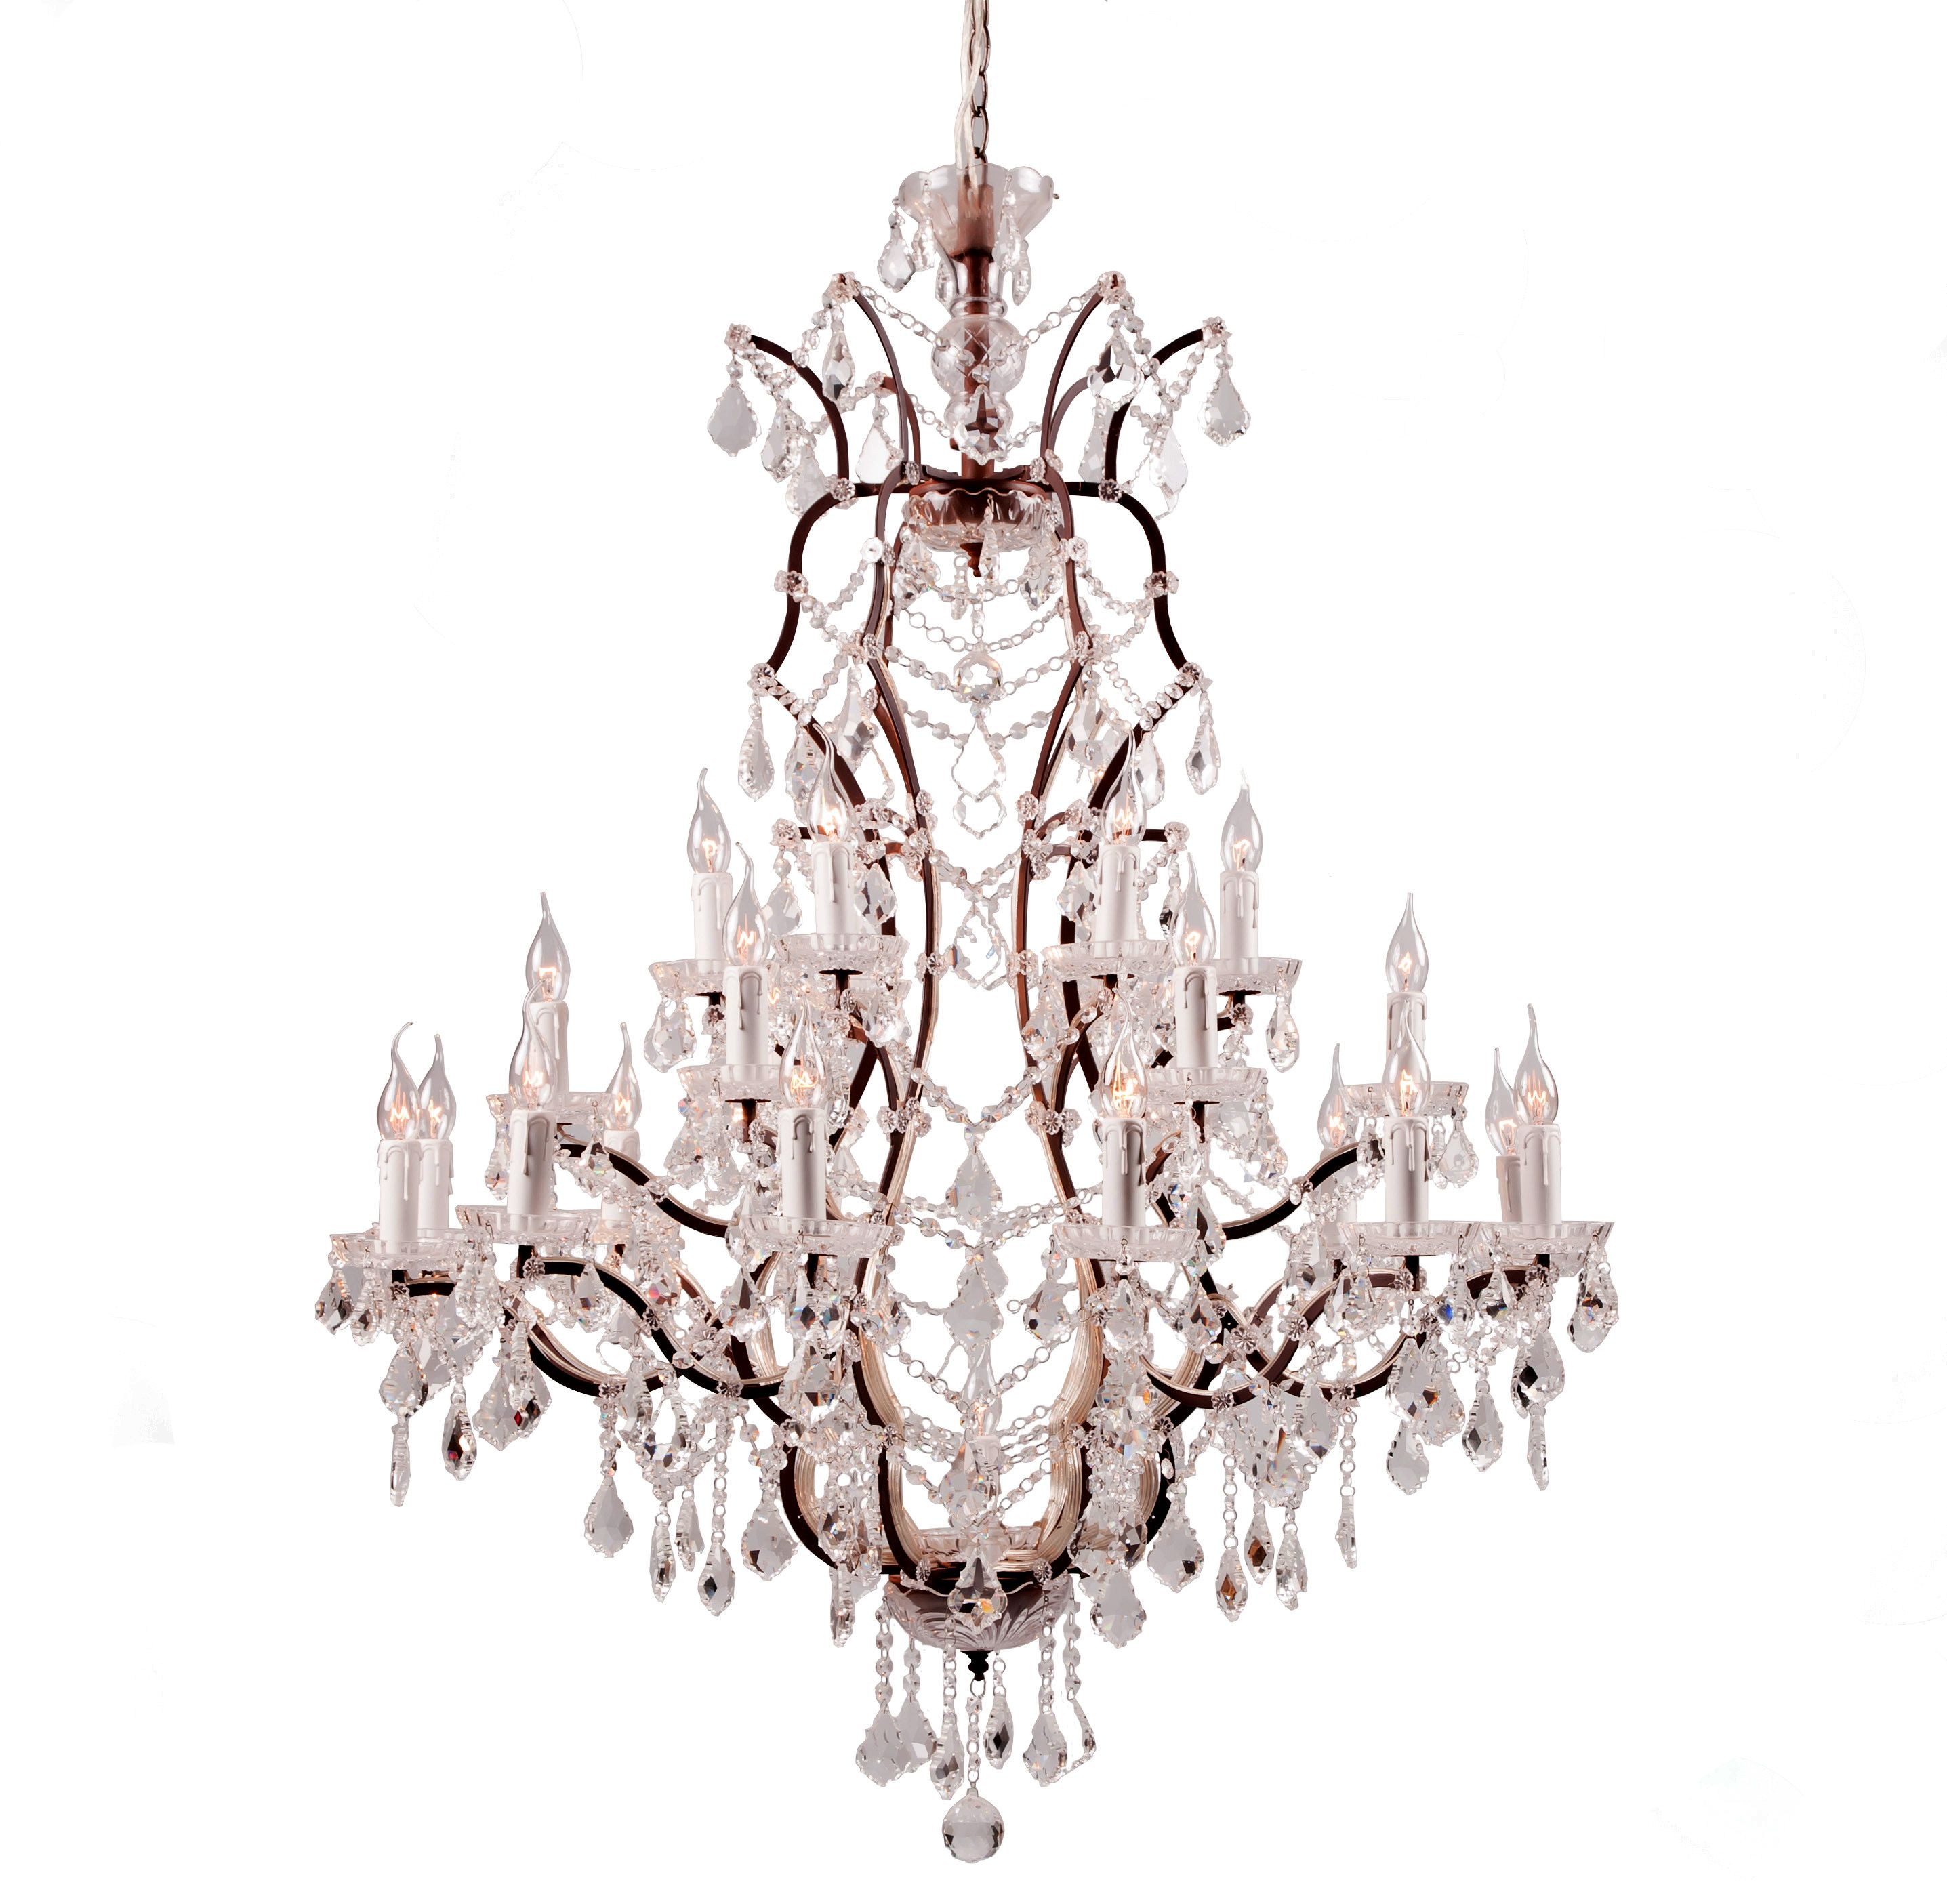 The Crystal Lighting Collection by Timothy Oulton is inspired by